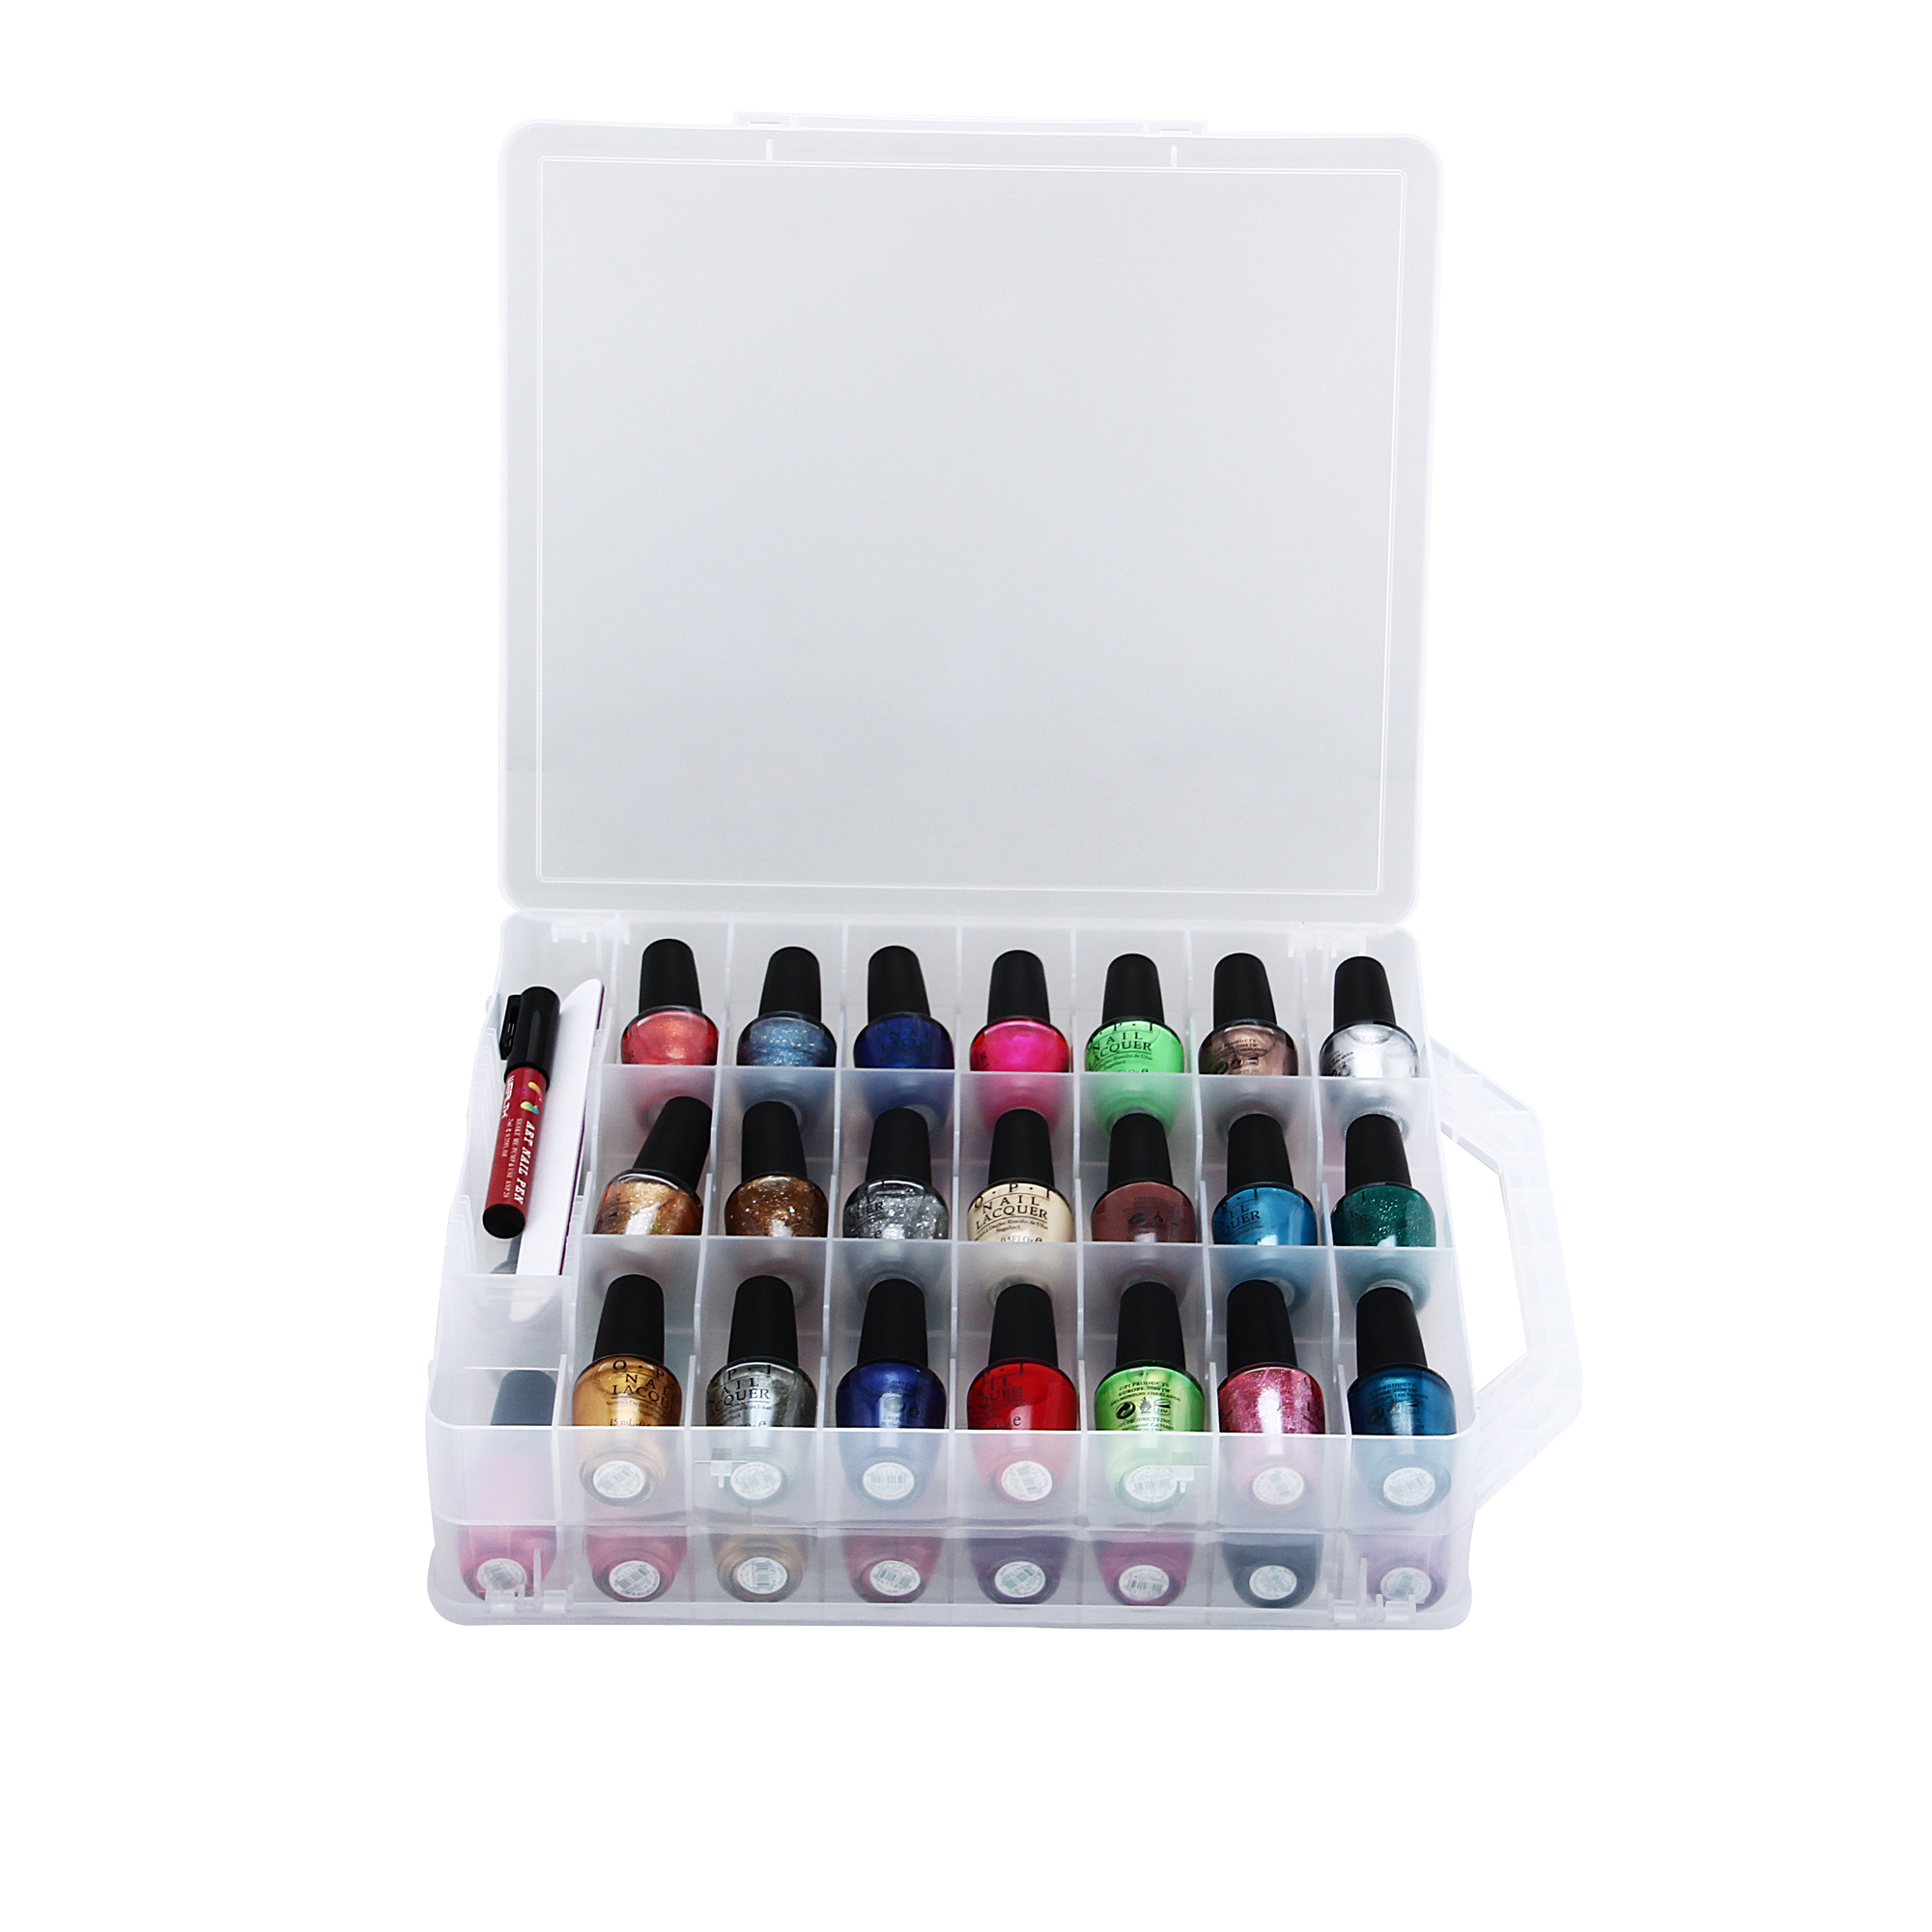 MAKARTT Nail Polish Holder Organizers For 48 Bottles